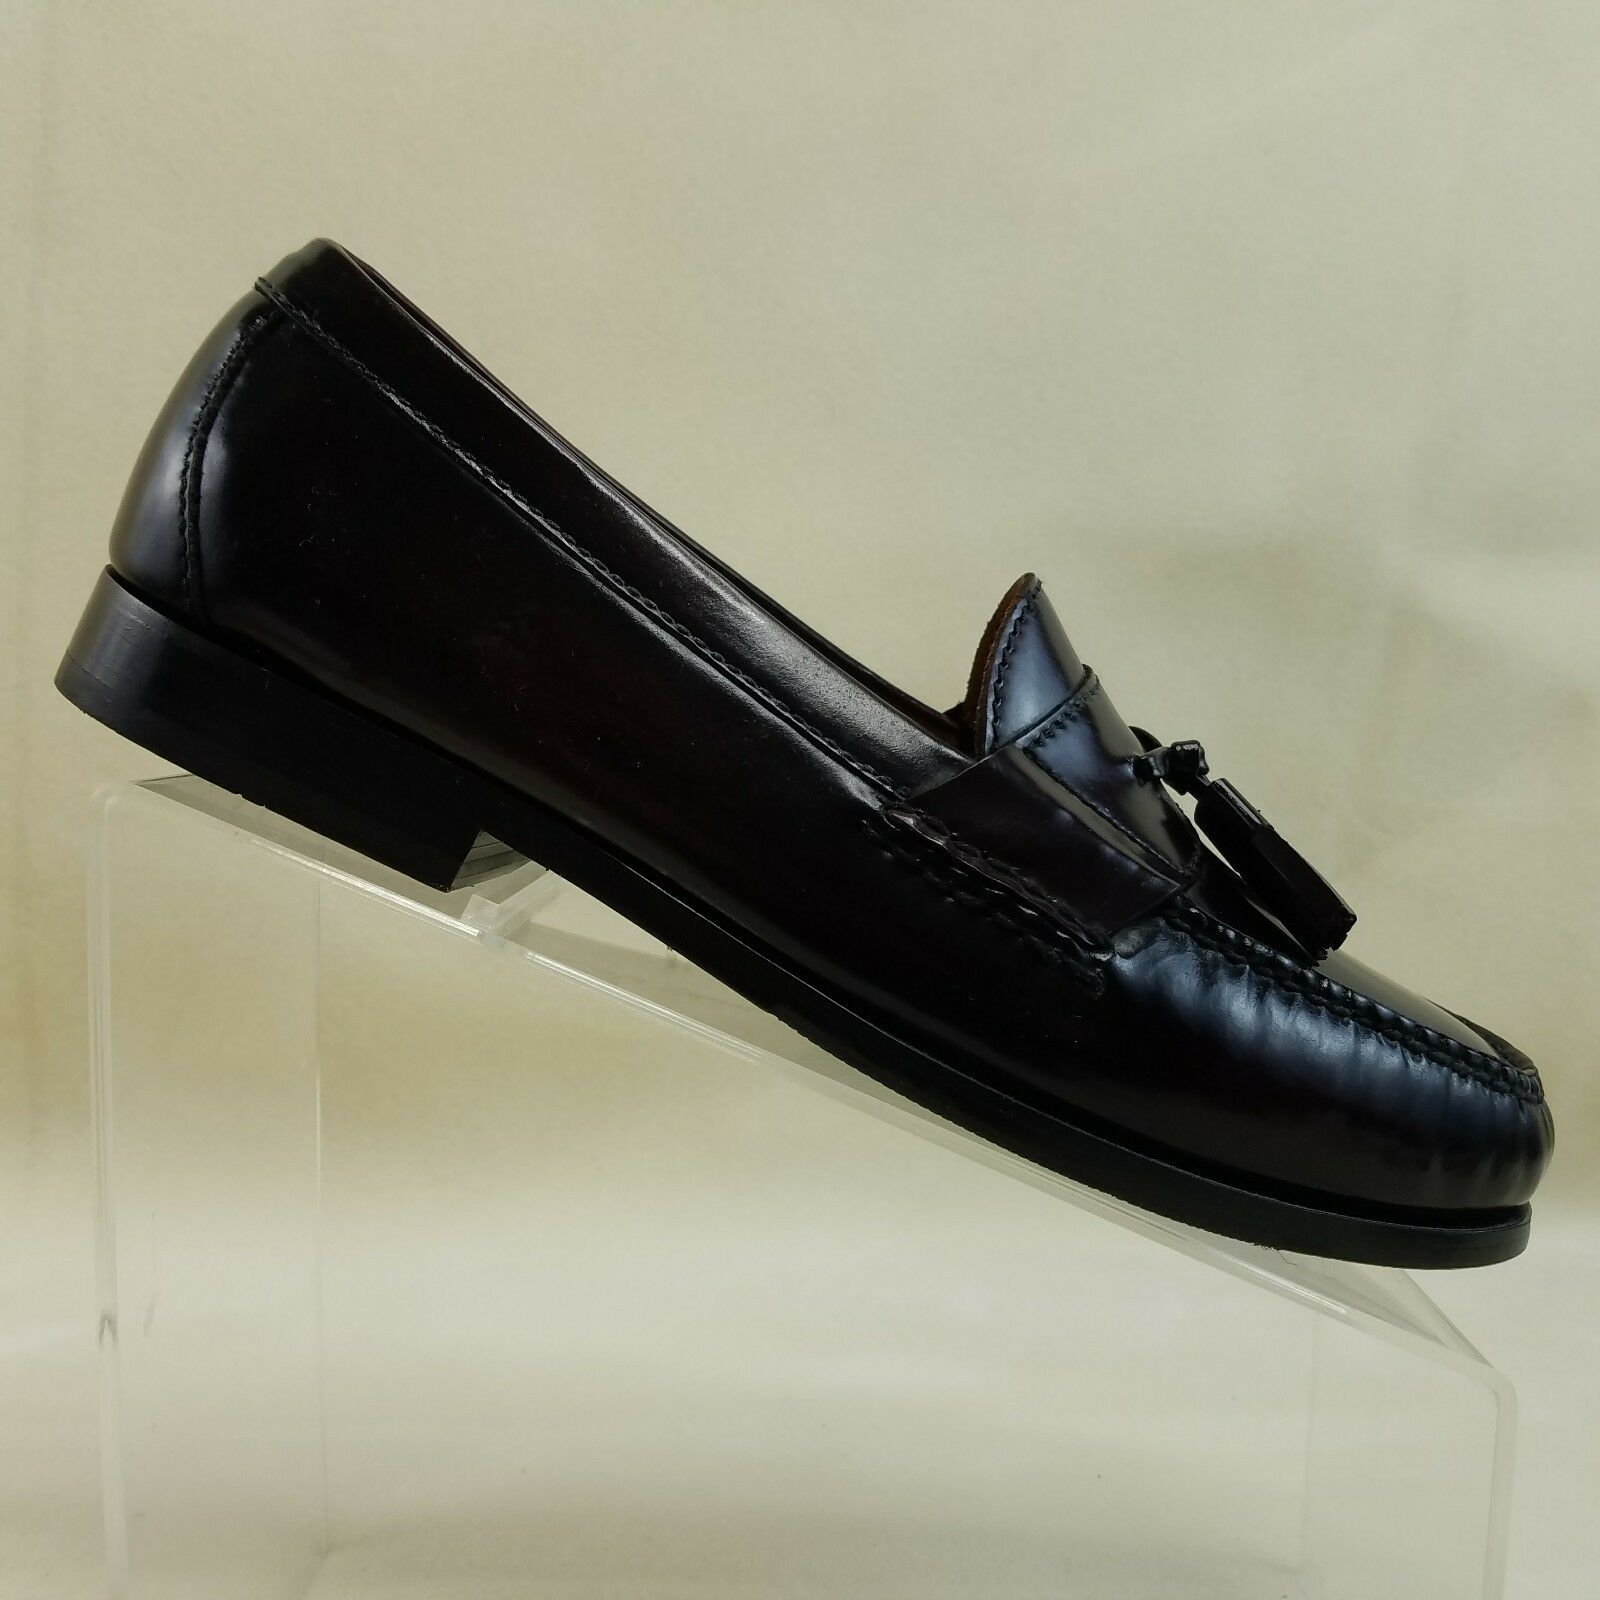 Cole Haan Burgundy Pinch Tassel Loafer shoes C06588 Men's Size 9M  C44